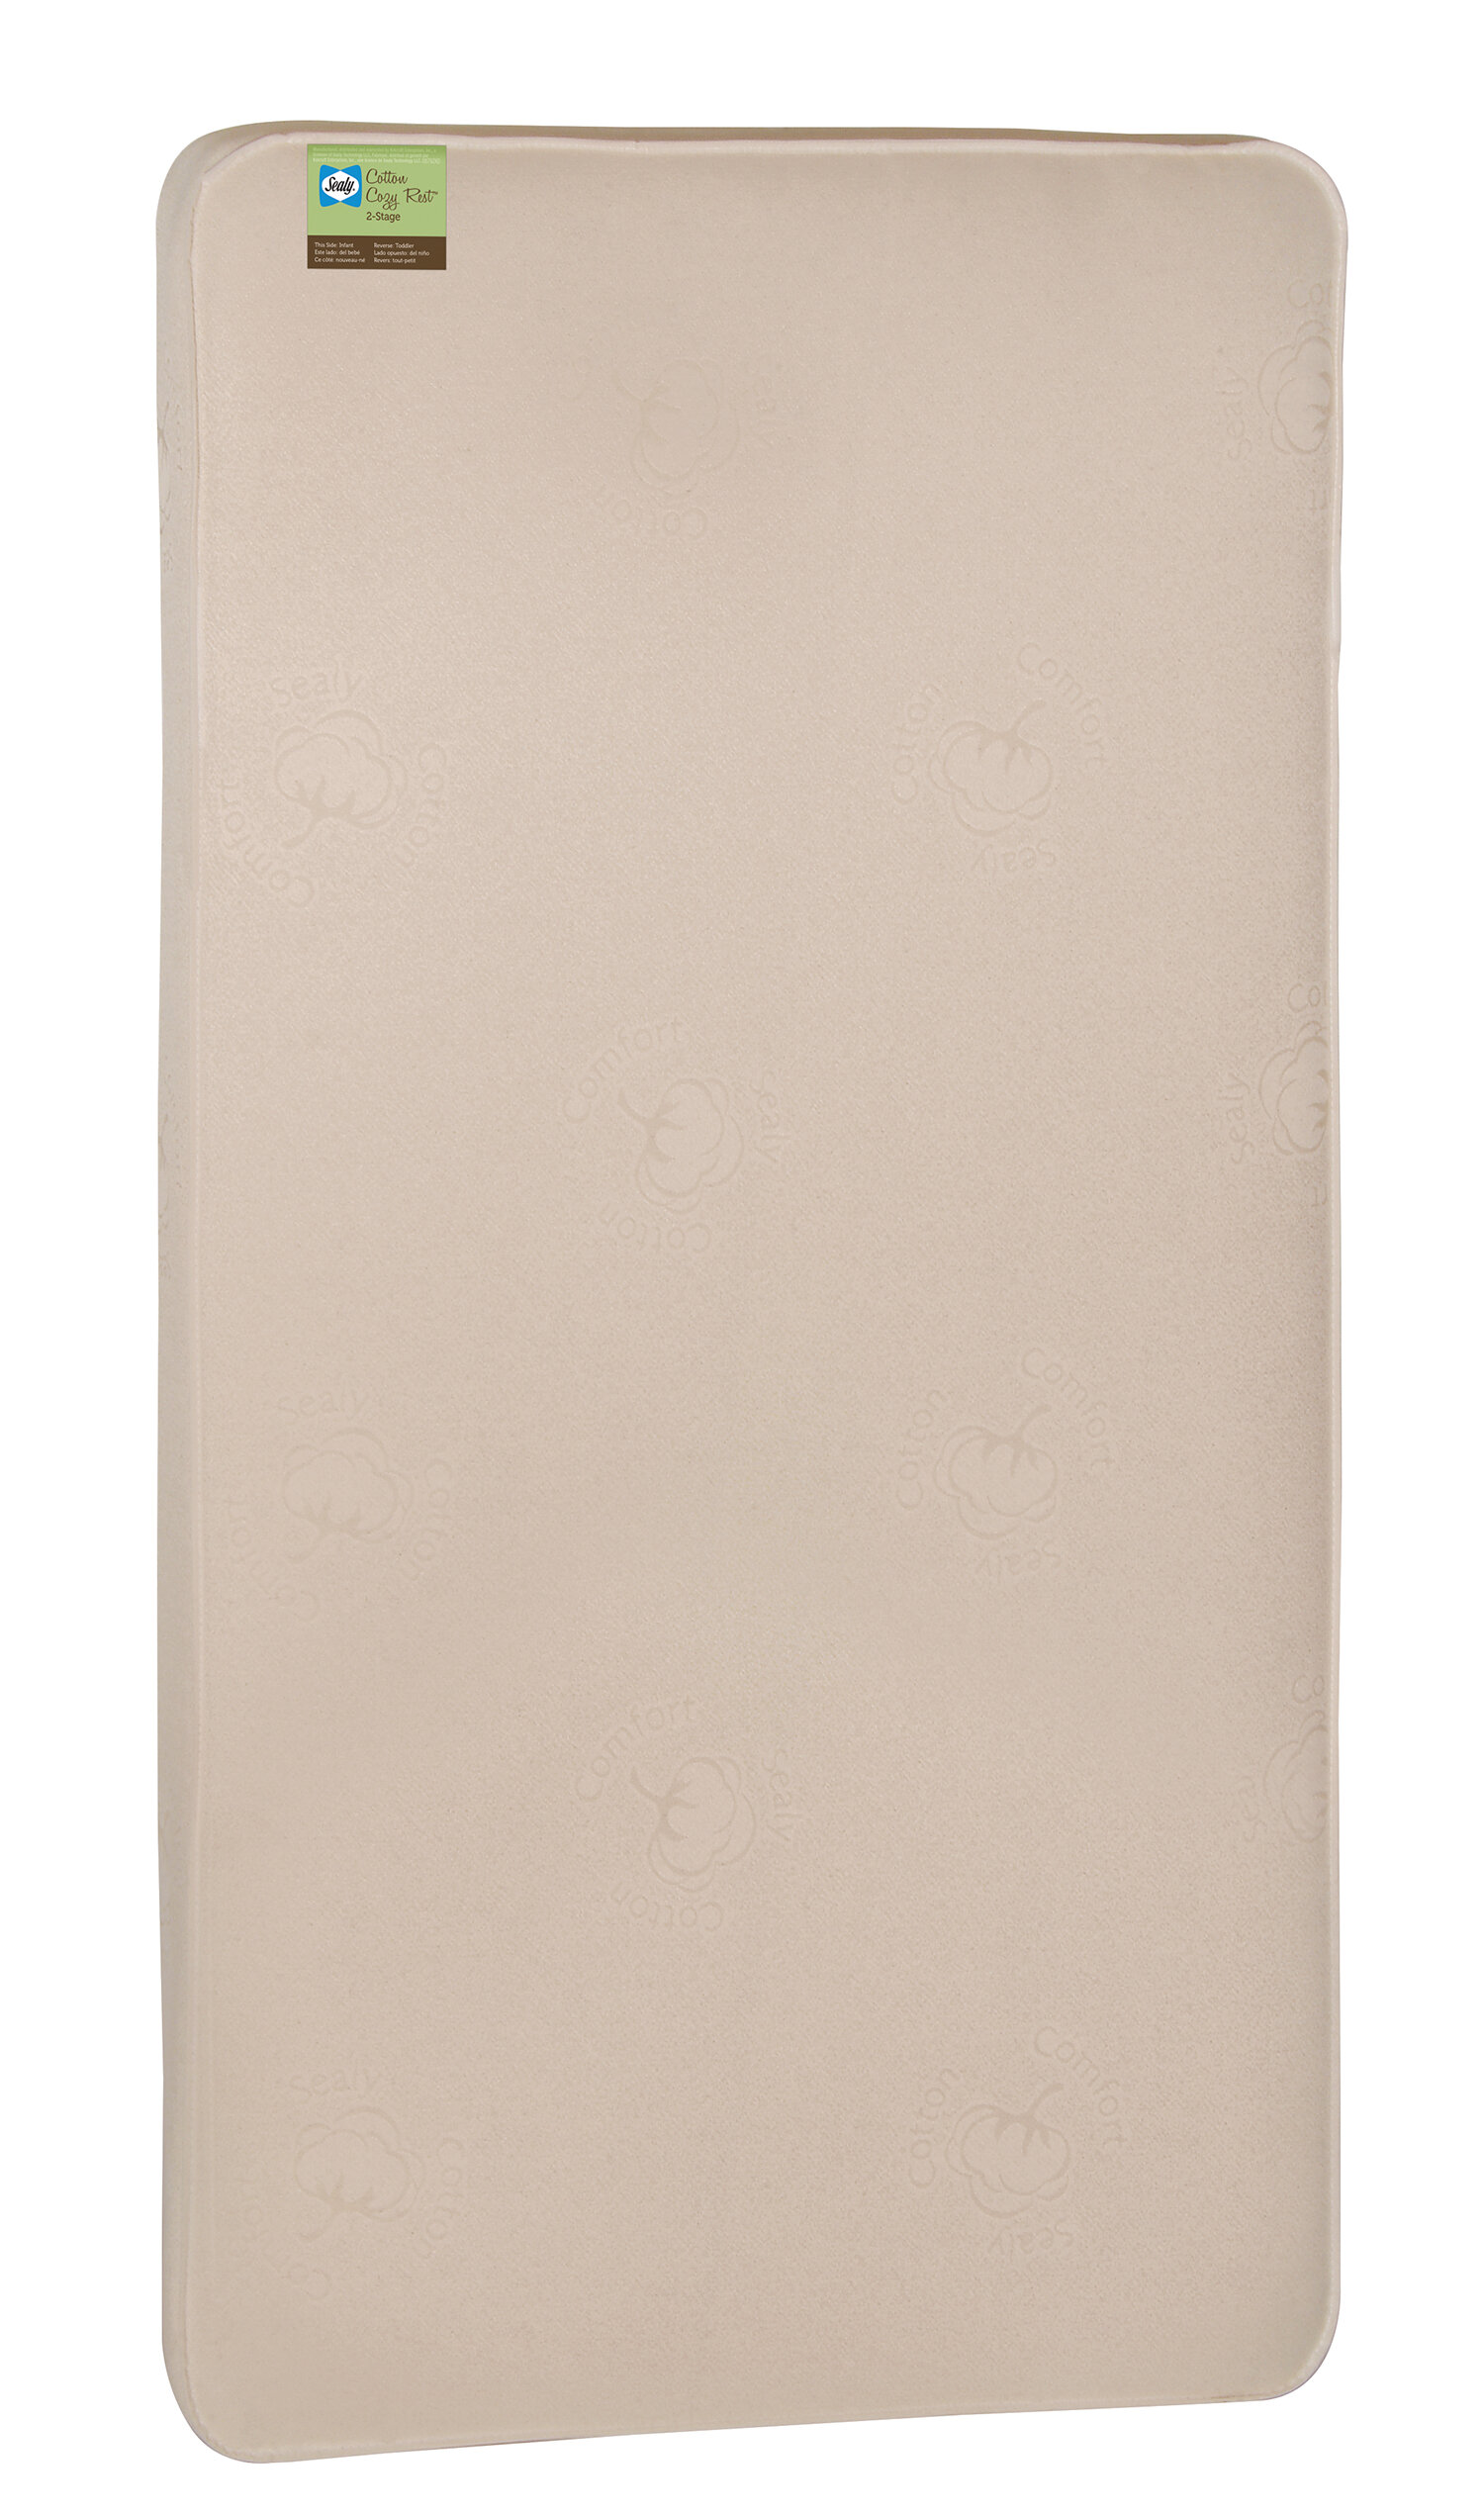 sealy cotton cozy rest 2 stage 5 5 crib mattress reviews wayfair